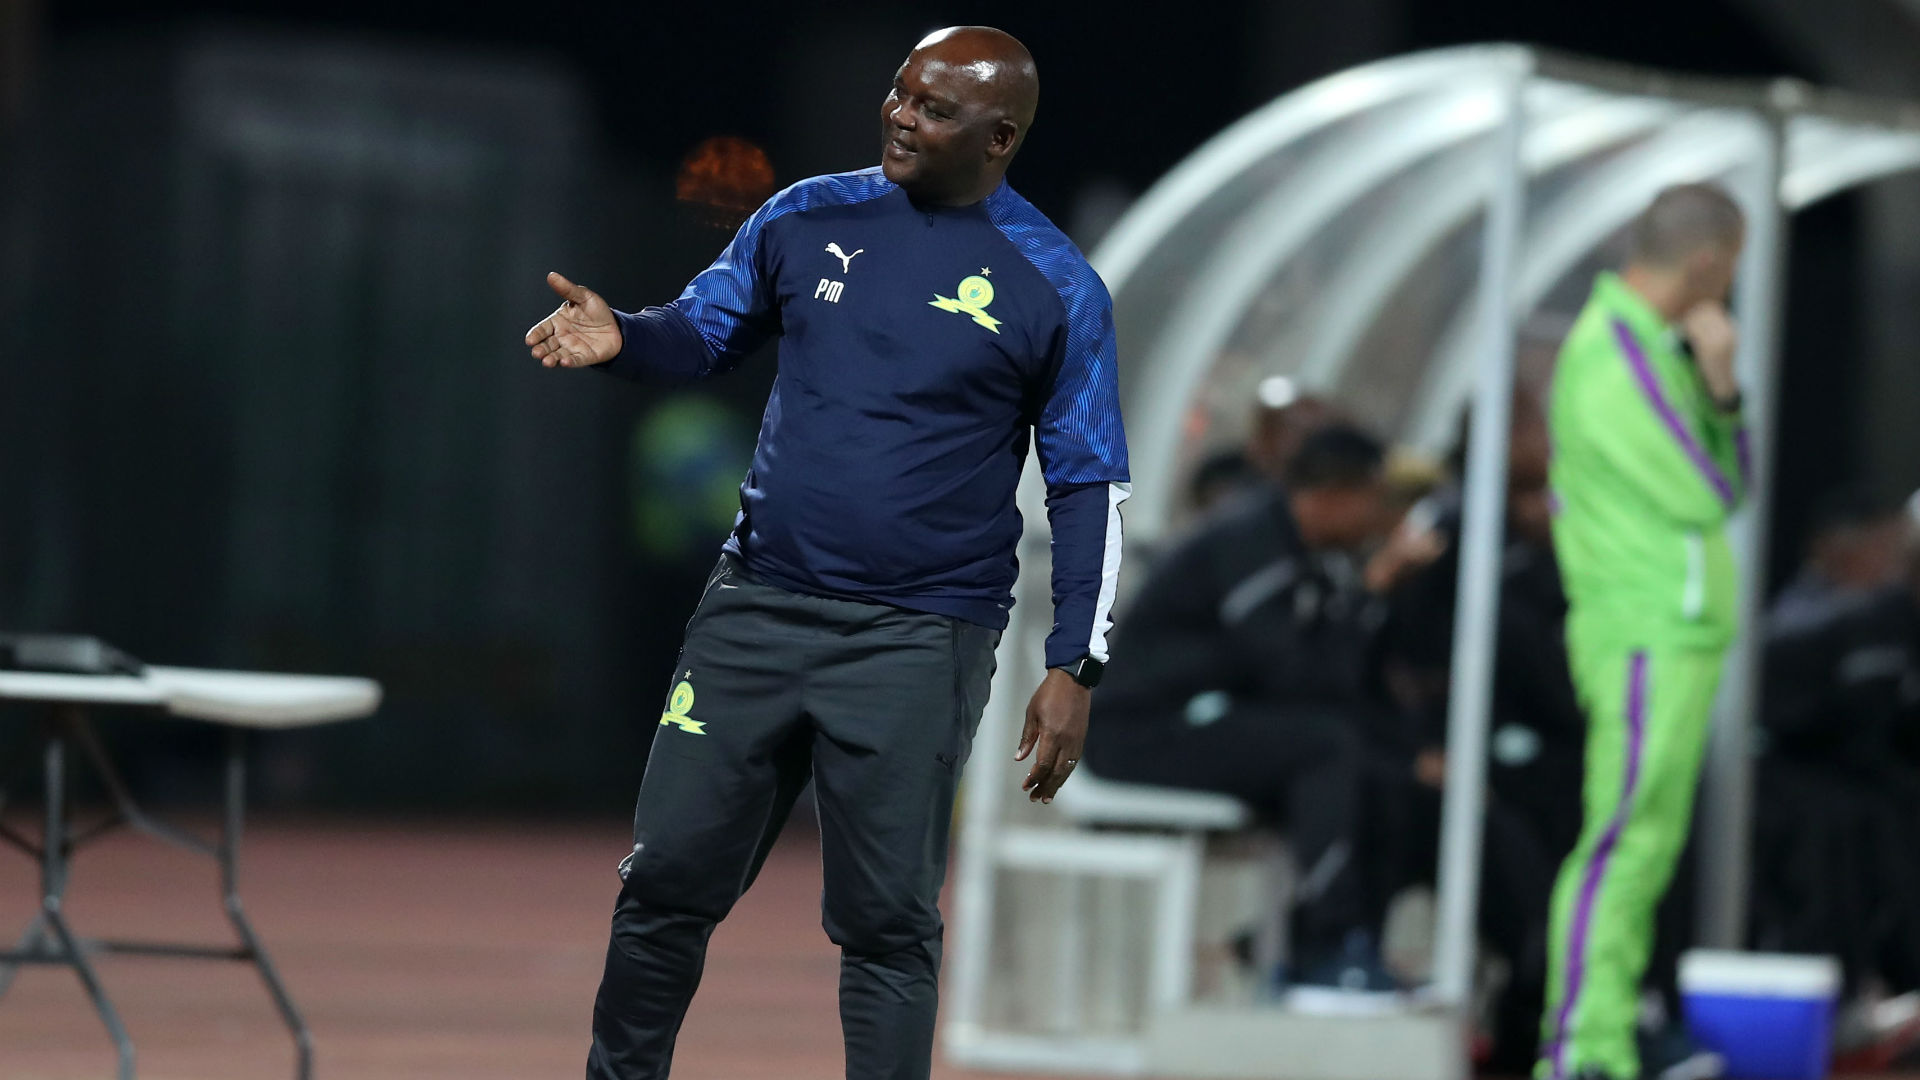 Mamelodi Sundowns boss Mosimane sees many incentives for 'wounded lion' Bidvest Wits